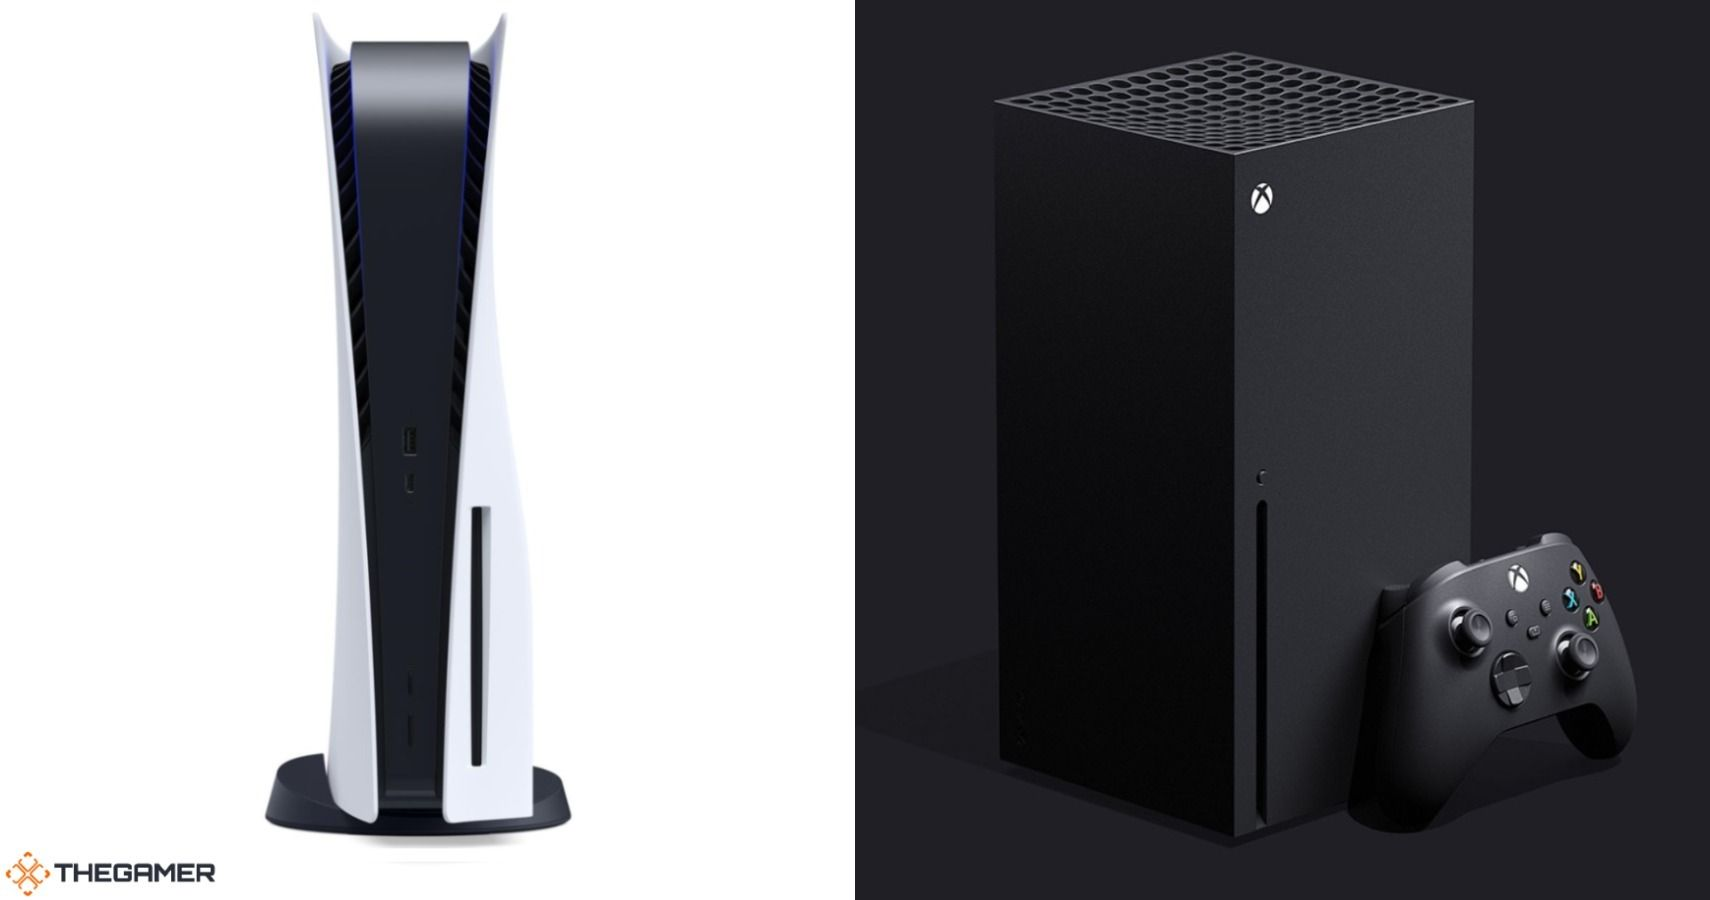 PS5 Vs. Xbox Series X – Which Is Better?